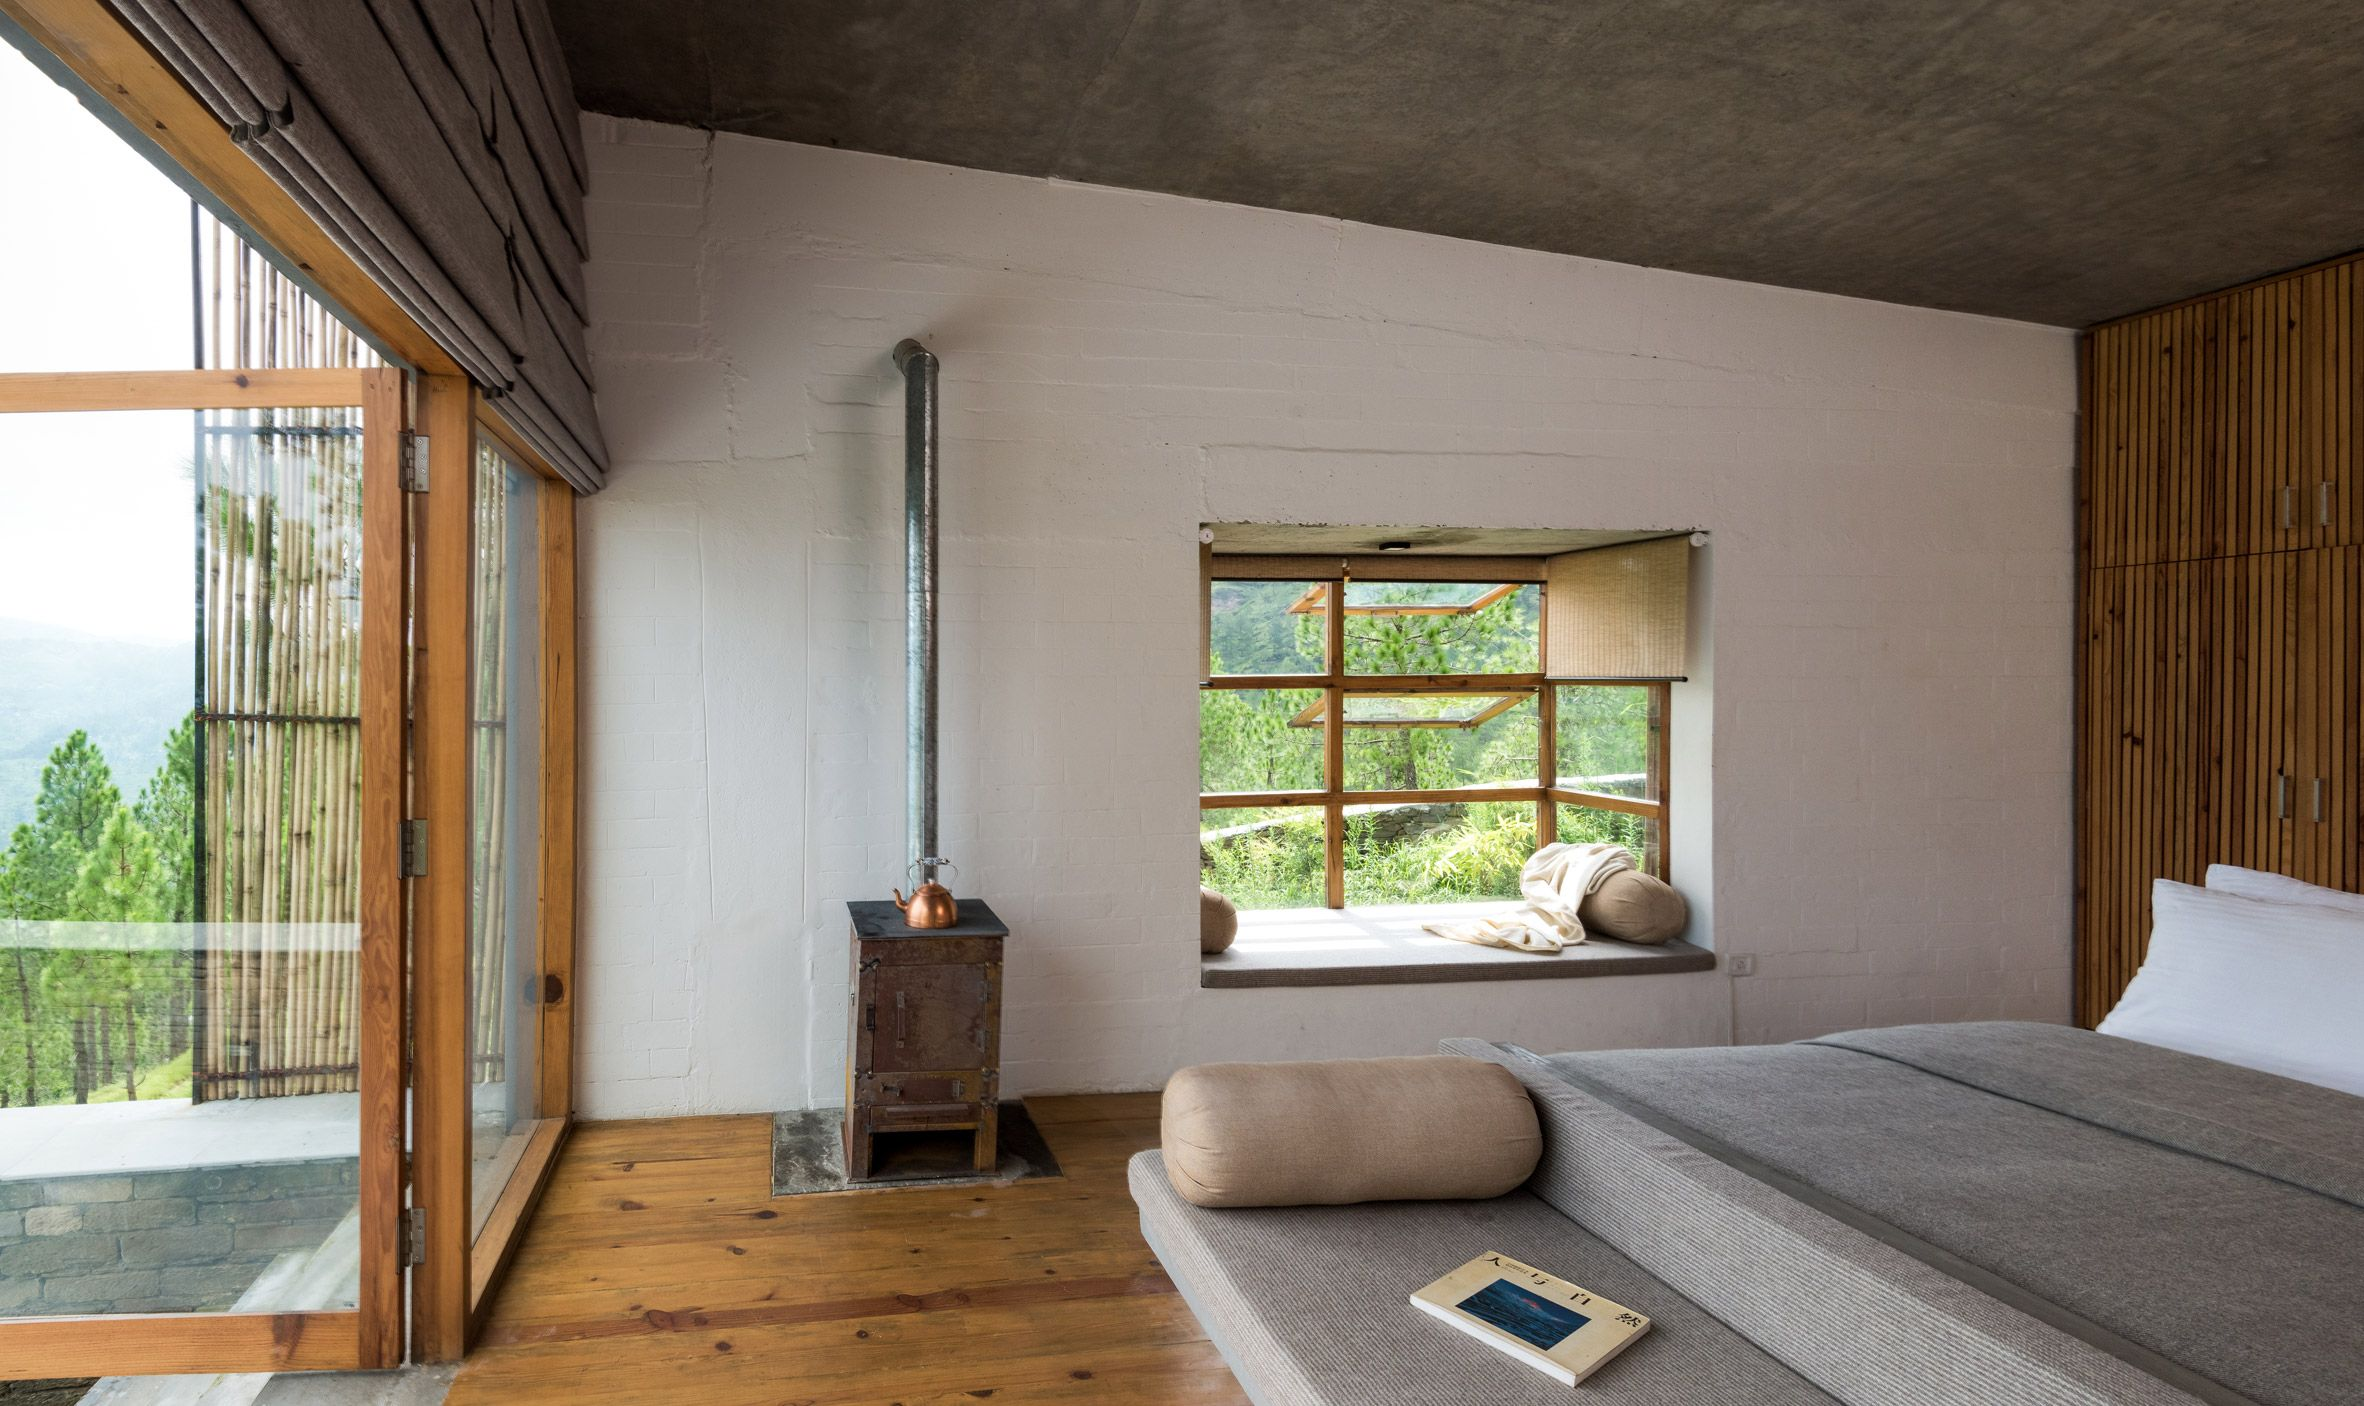 Kumaon Hotel Zowa Architecture Hotels India Mountains Dezeen 2364 Col 13